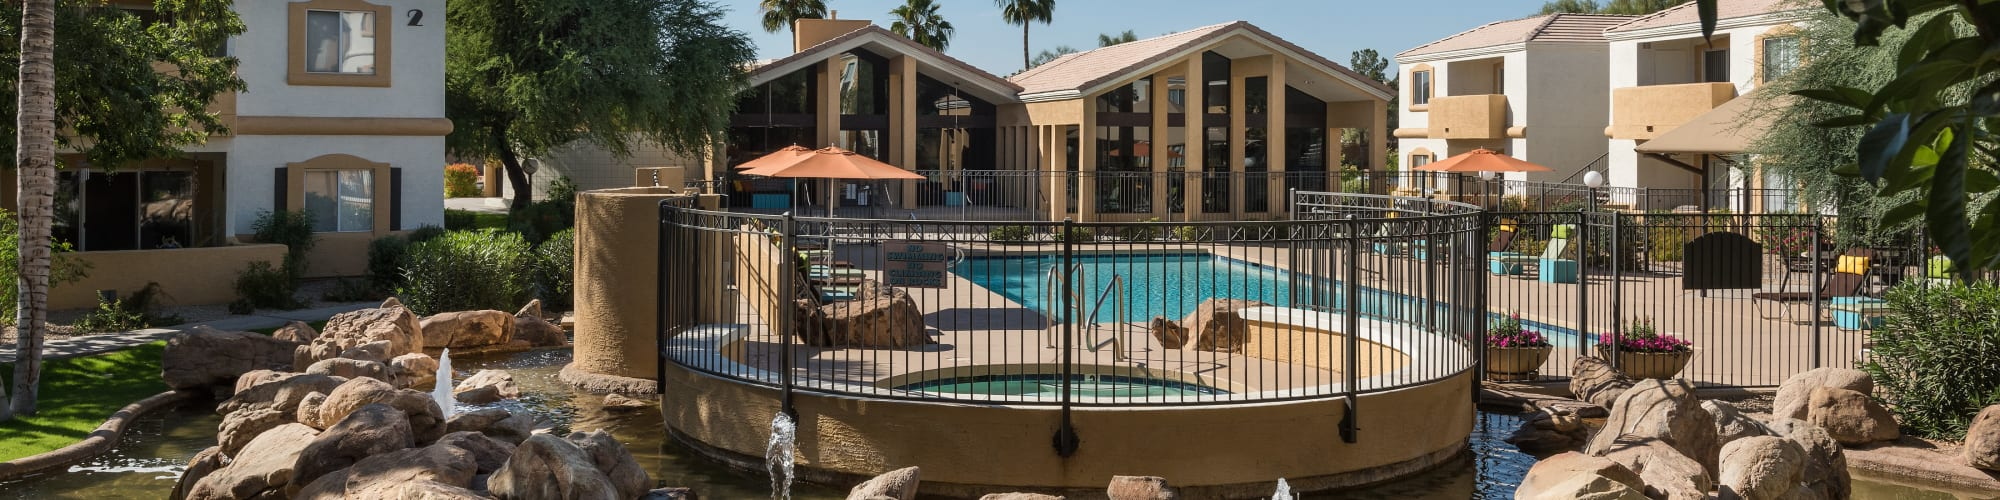 Amenities at Club Cancun in Chandler, Arizona